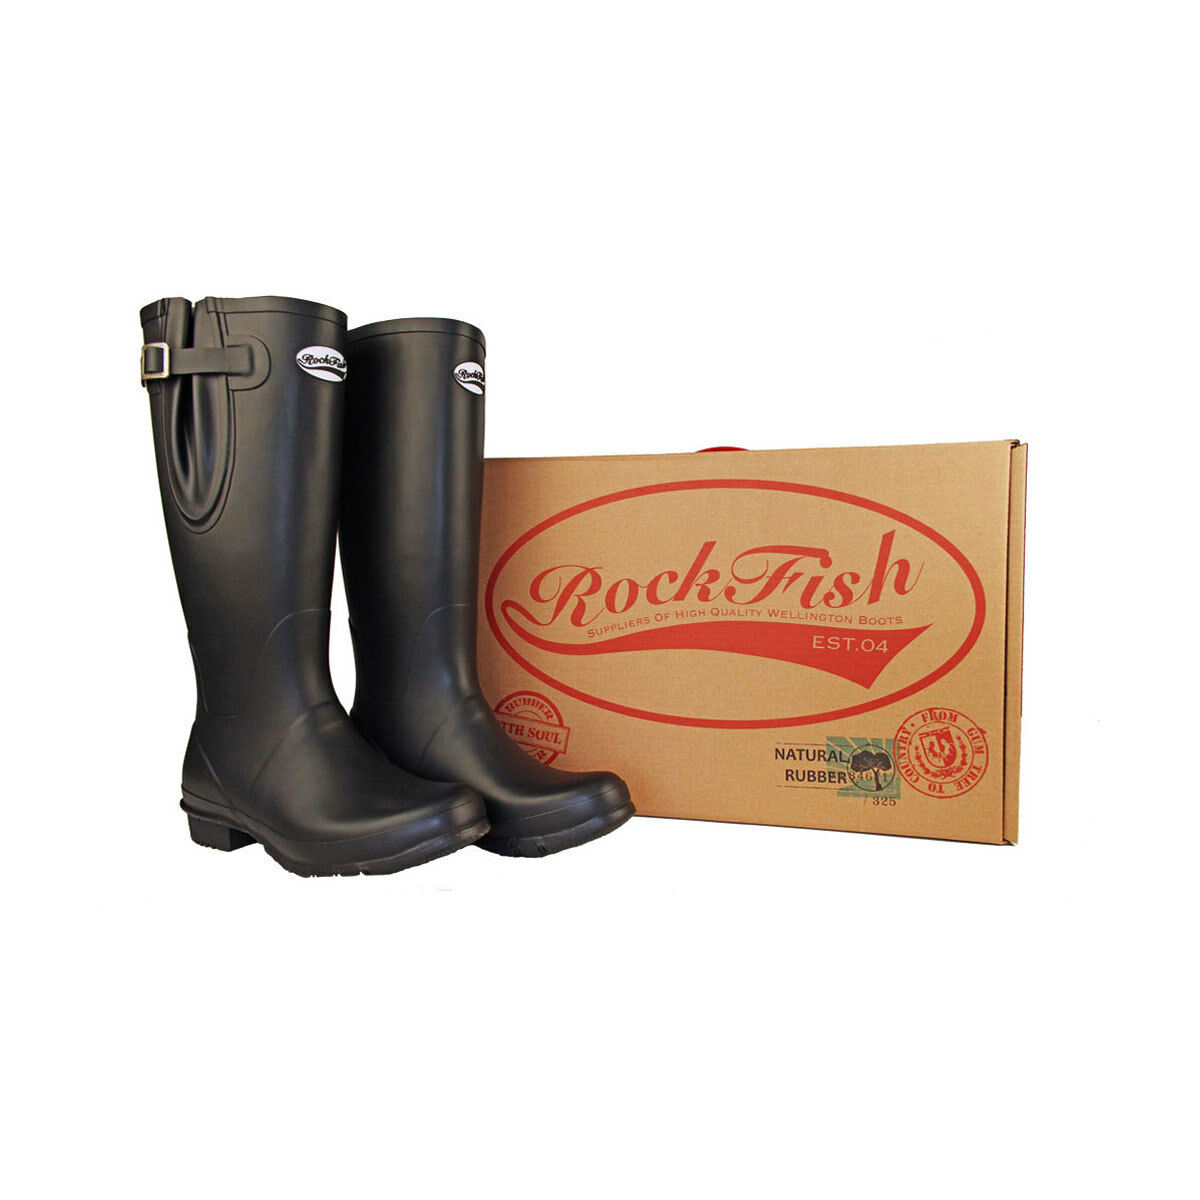 ROCKFISH herren CLASSIC ADJUSTABLE CALF TALL MATT WELLINGTON WELLIES DURABLE